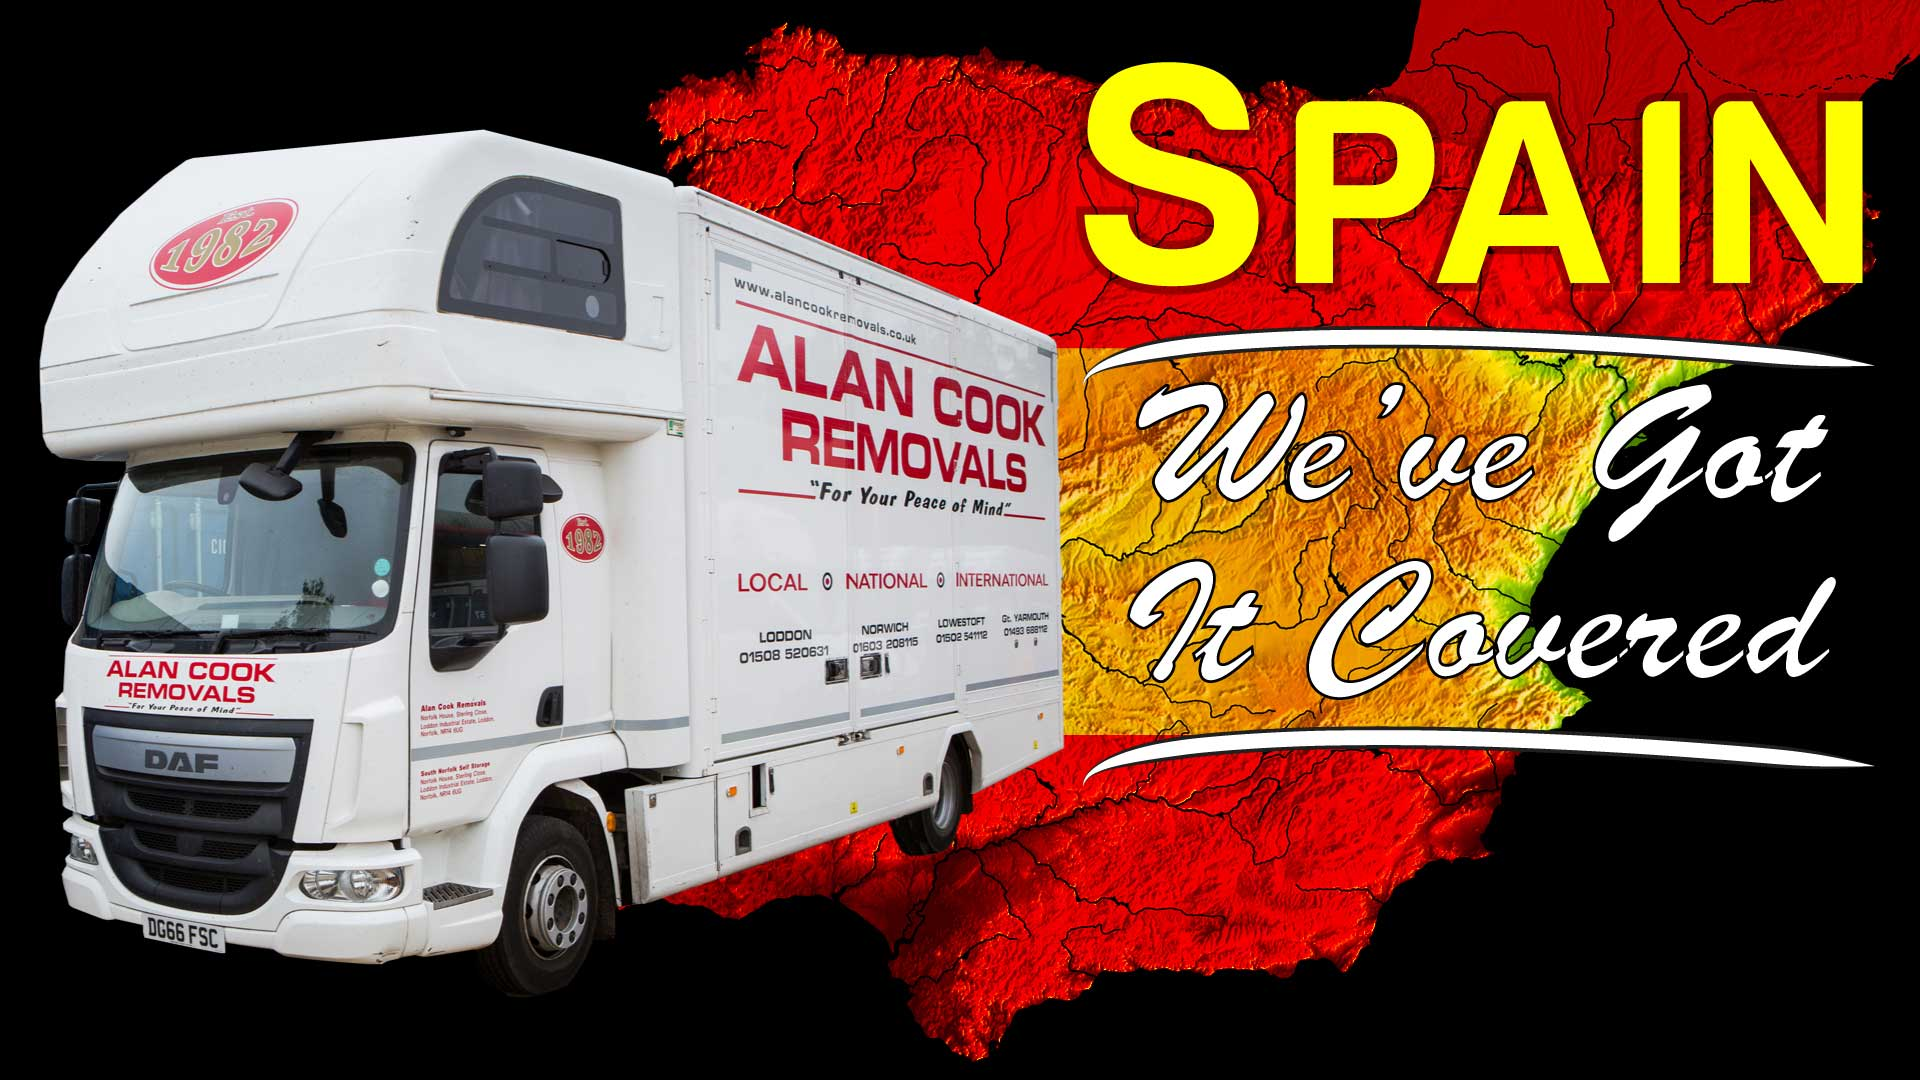 Monthly service to Spain - Alan Cook Removals - Of all the Norwich Removals Companies we pride ourselves in offering the most prfessional, 